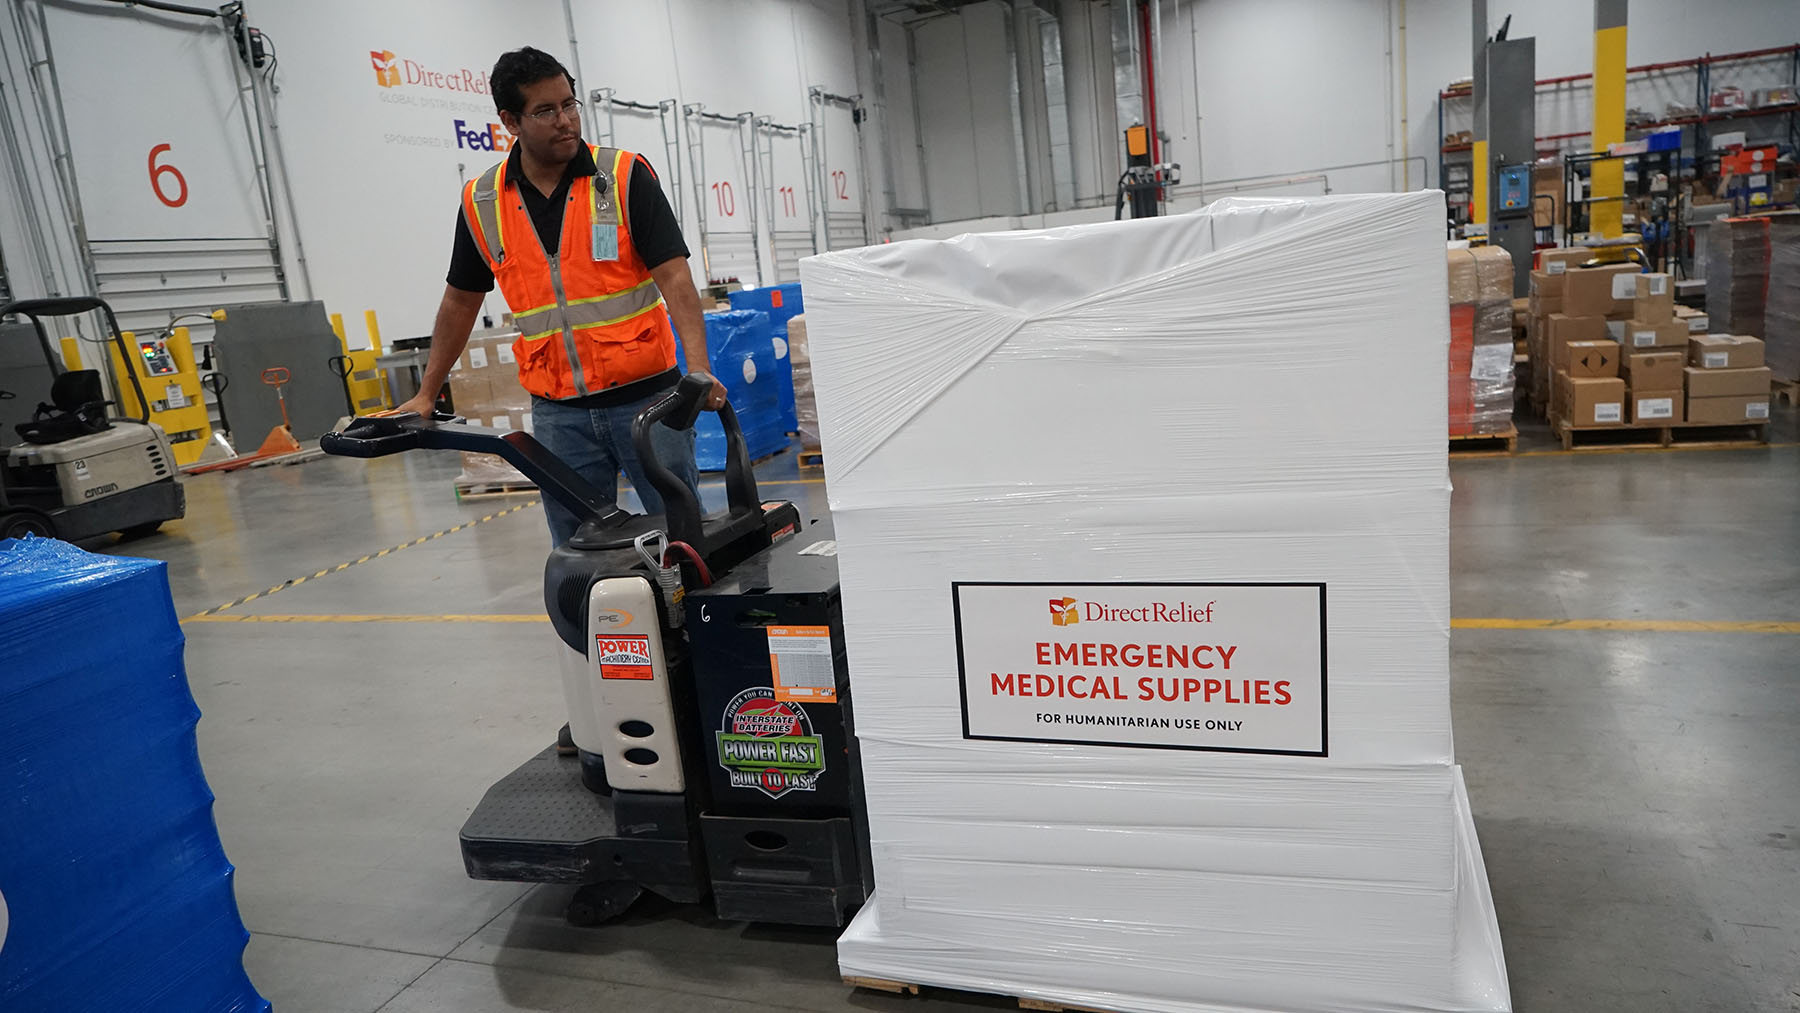 Shipments bound for Dhulikhel Hospital in Nepal leave Direct Relief's warehouse on July 19, 2019, containing medical aid for flooded communities in the region. (Lara Cooper/Direct Relief)